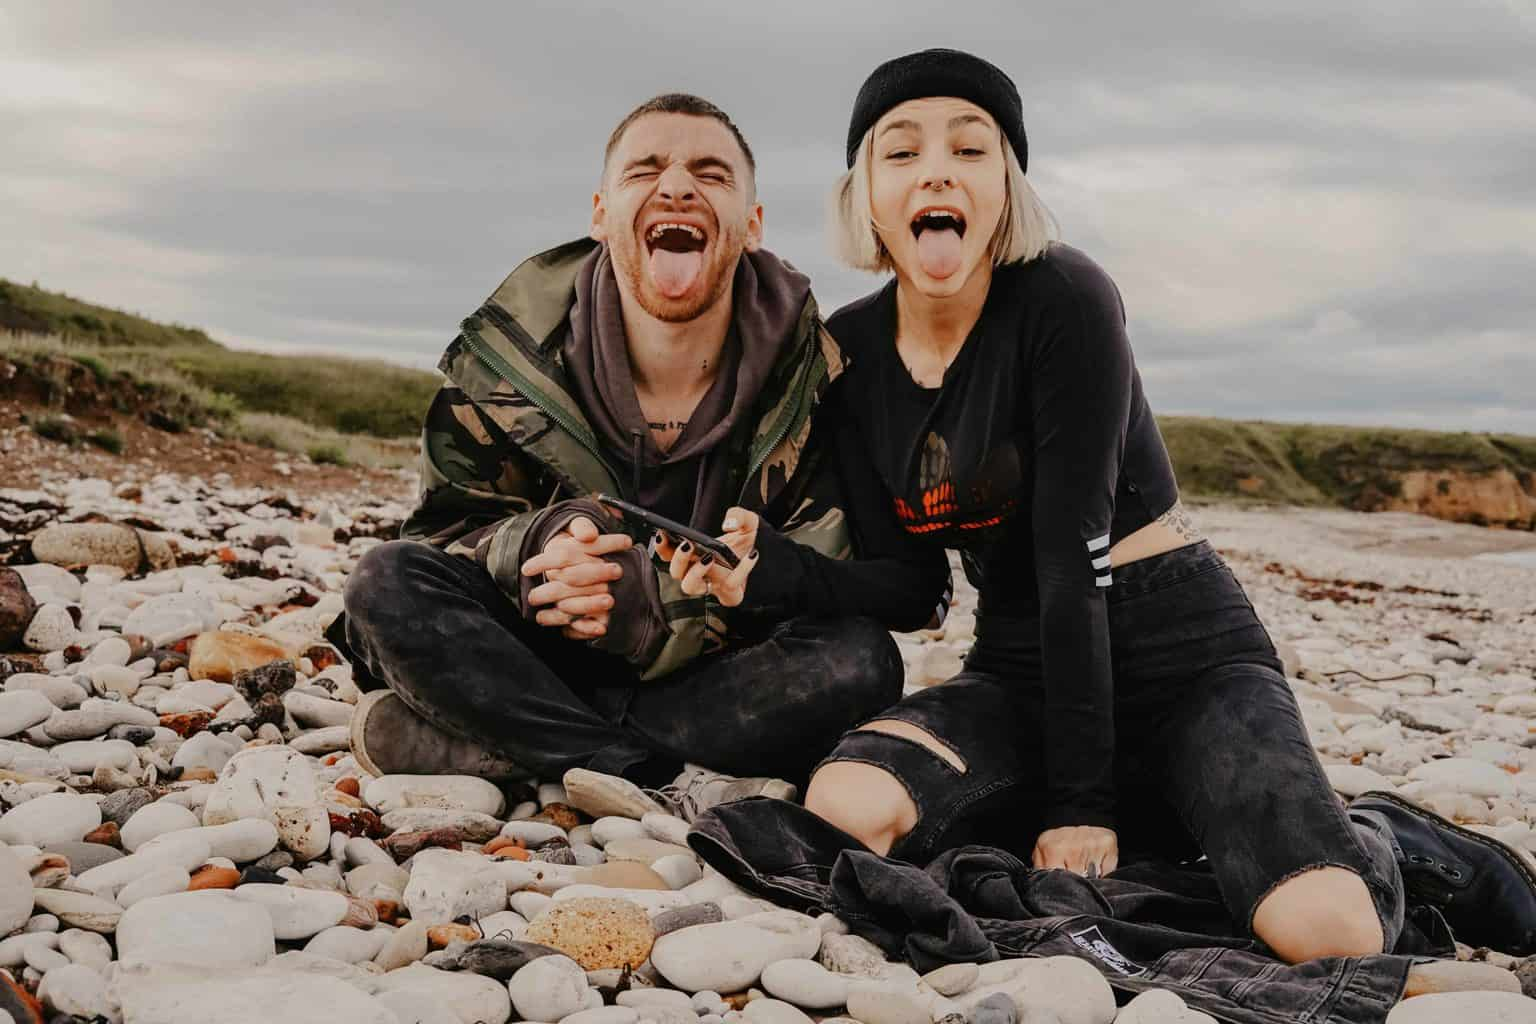 Silly couple on a pebbled beach, making wacky faces.